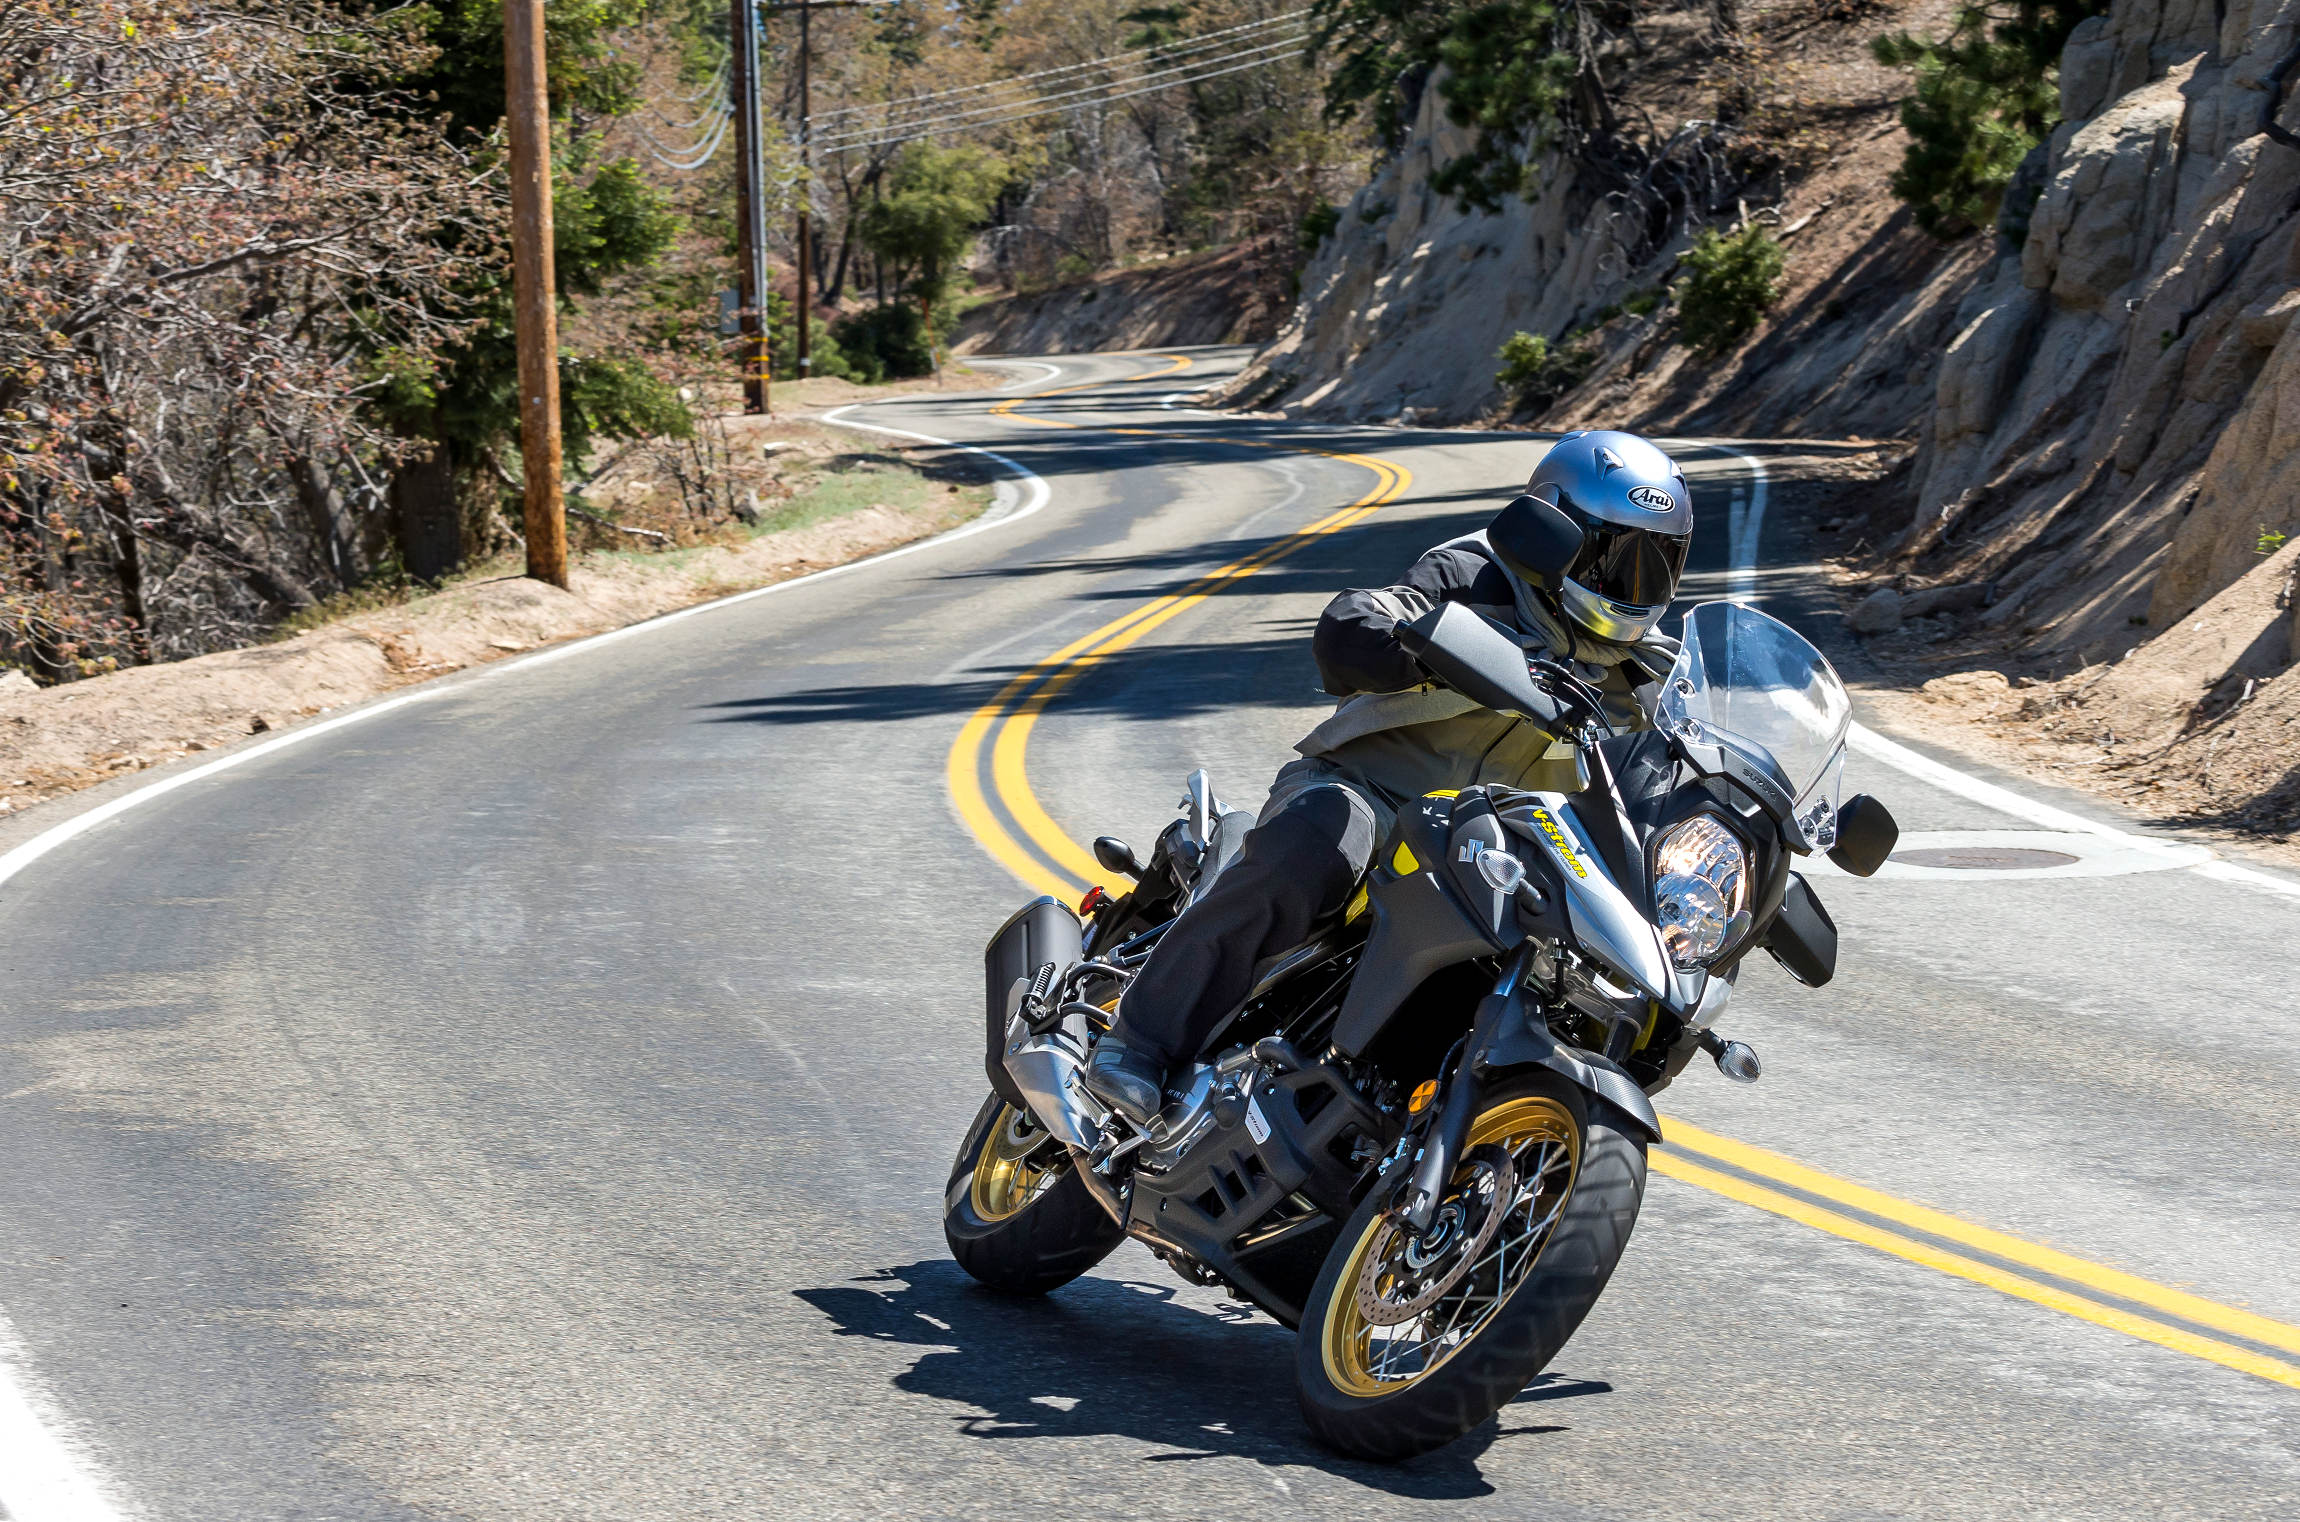 2017 Suzuki V Strom 650 And 650xt Md First Ride Motorcycledaily Ken 1 12 By